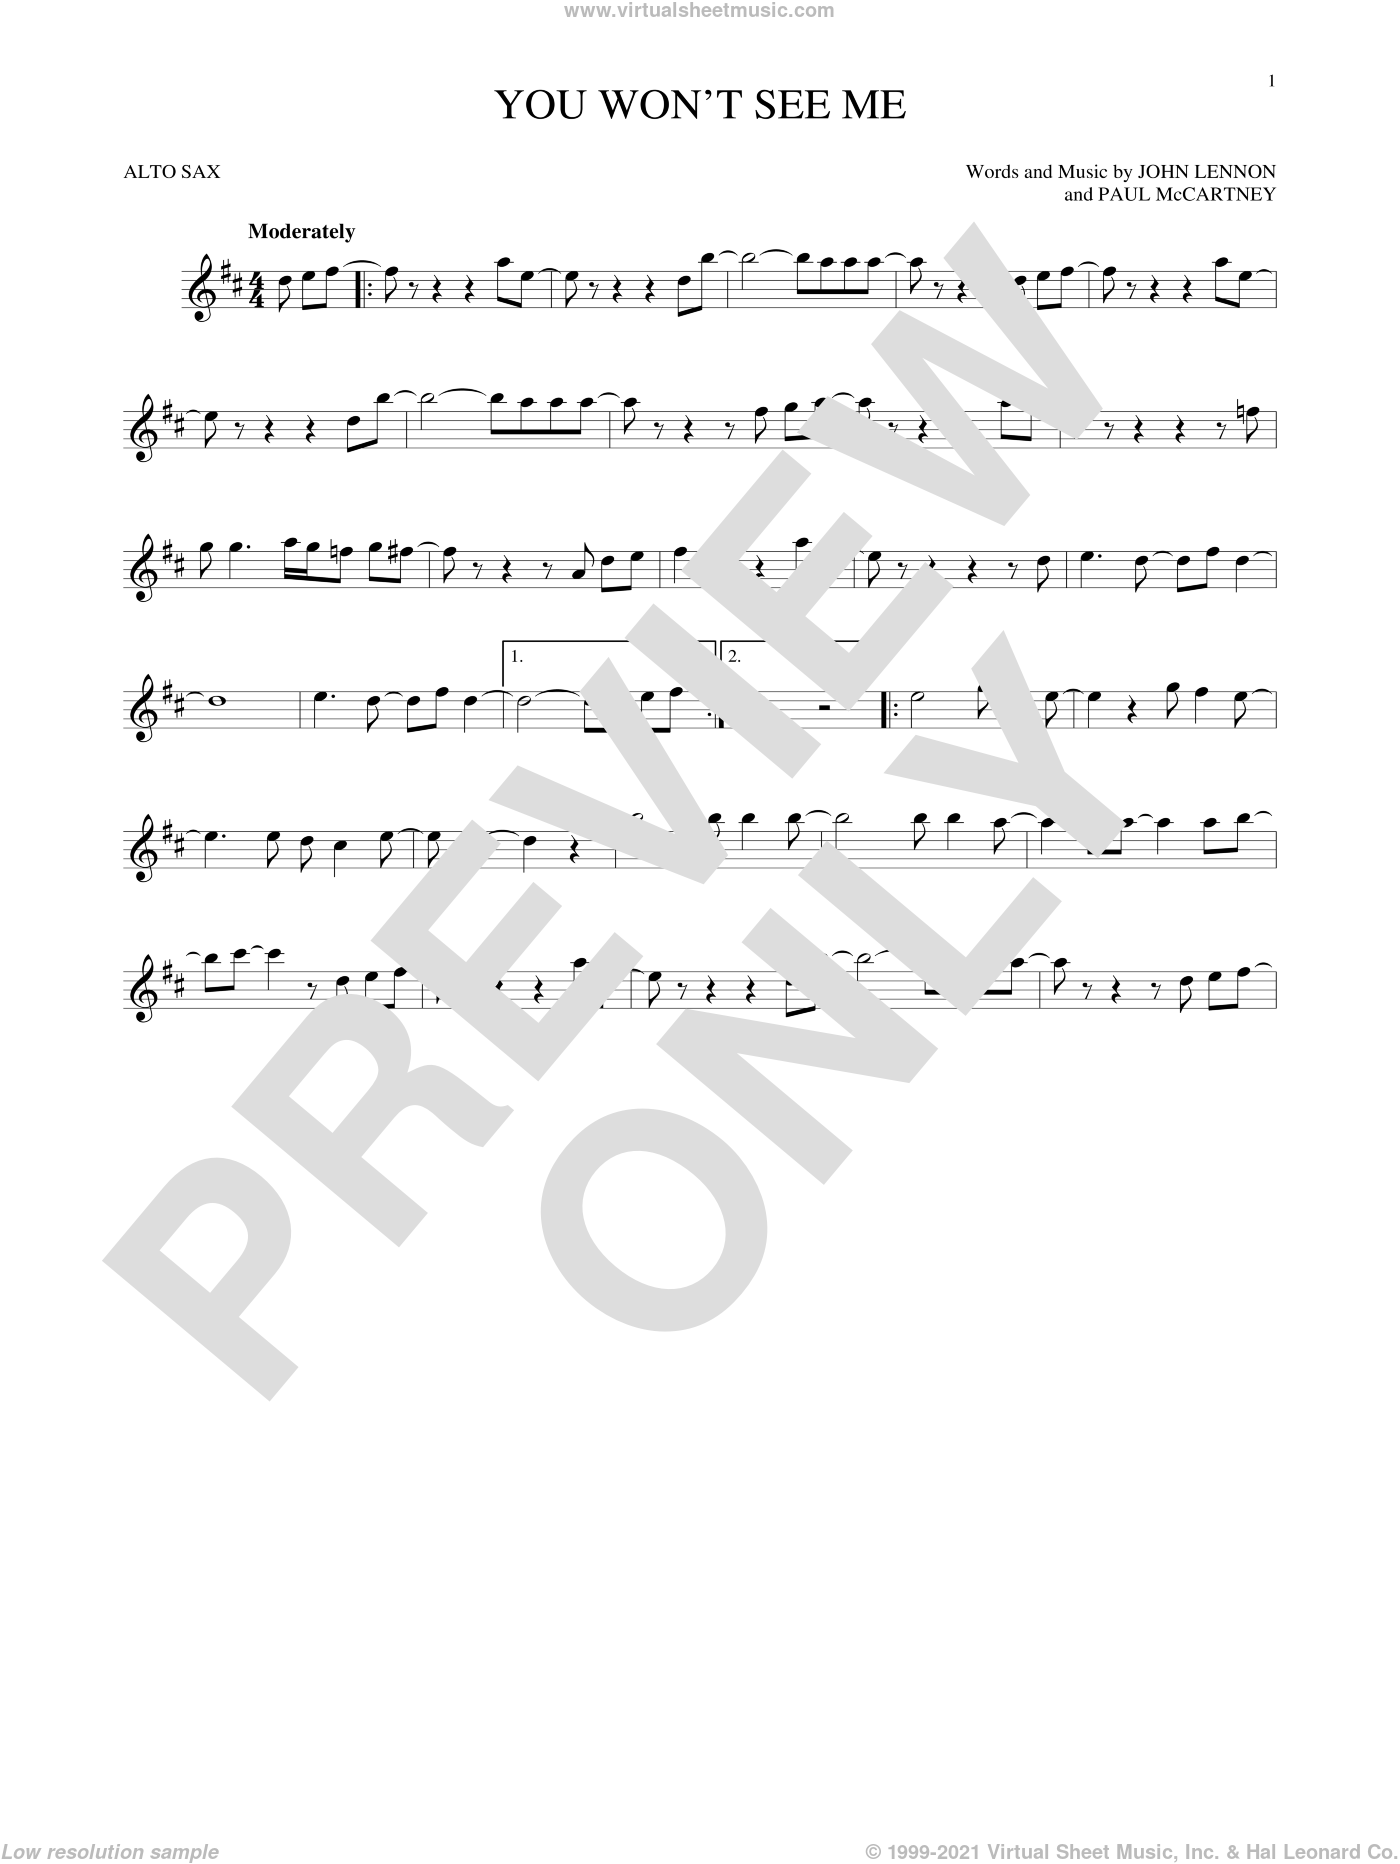 You Won't See Me sheet music for alto saxophone solo by Paul McCartney, The Beatles and John Lennon. Score Image Preview.